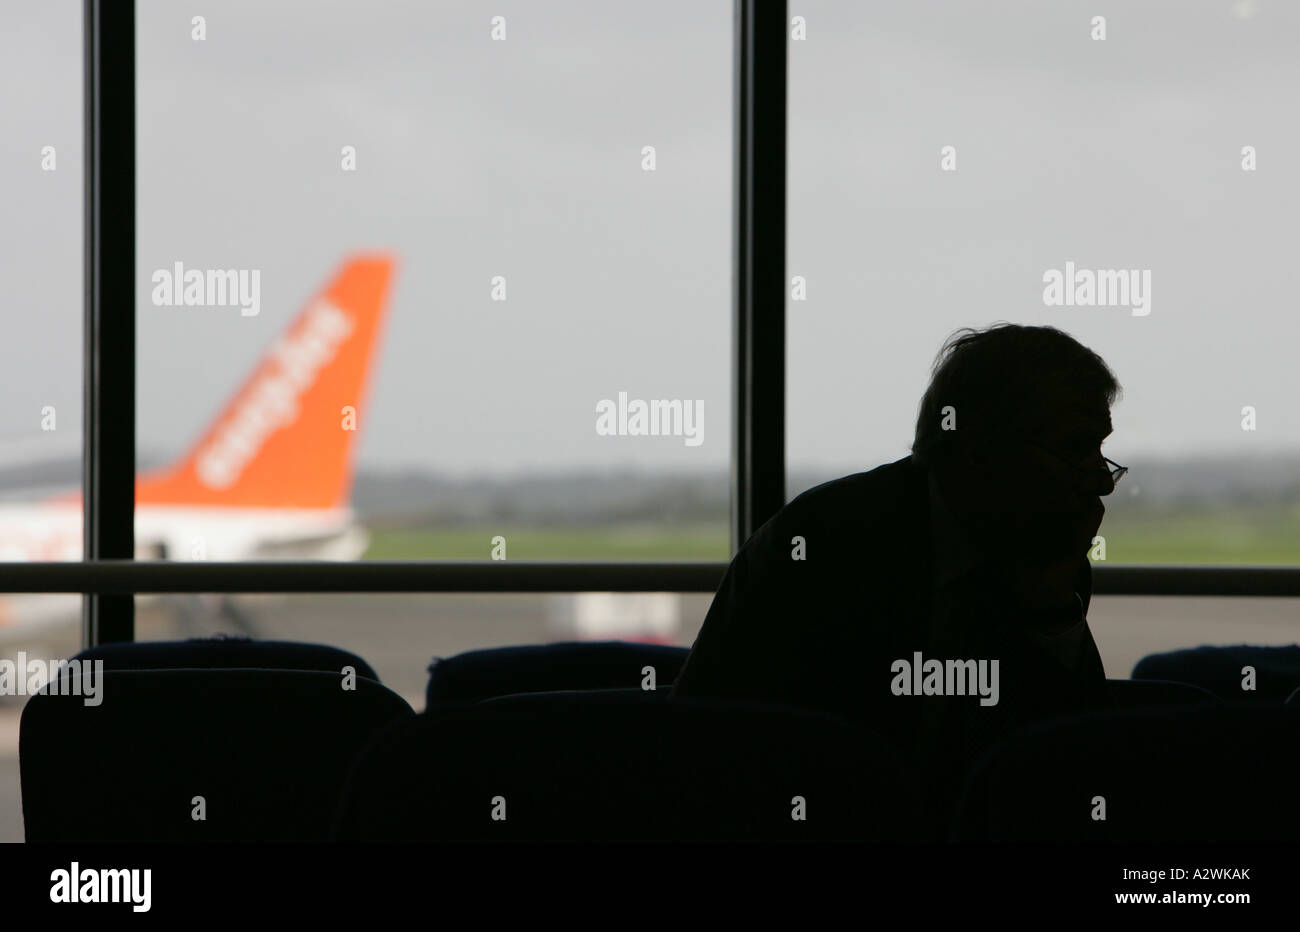 silhouette of businessman on mobile phone in departure lounge with easyjet aircraft in background - Stock Image